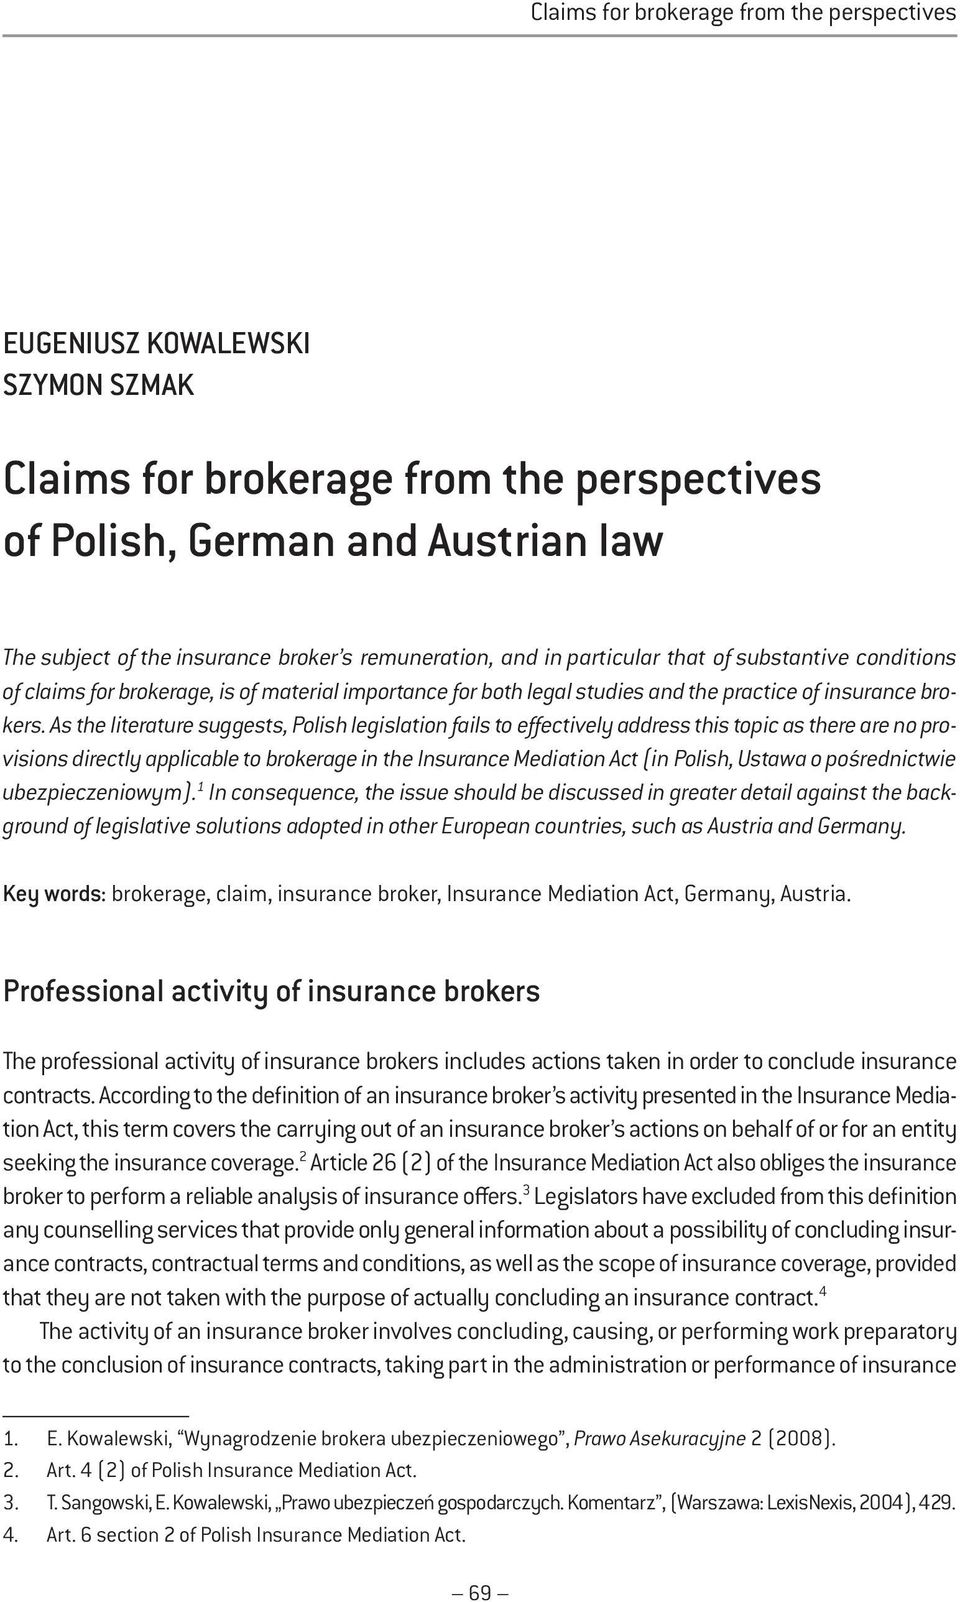 As the literature suggests, Polish legislation fails to effectively address this topic as there are no provisions directly applicable to brokerage in the Insurance Mediation Act (in Polish, Ustawa o